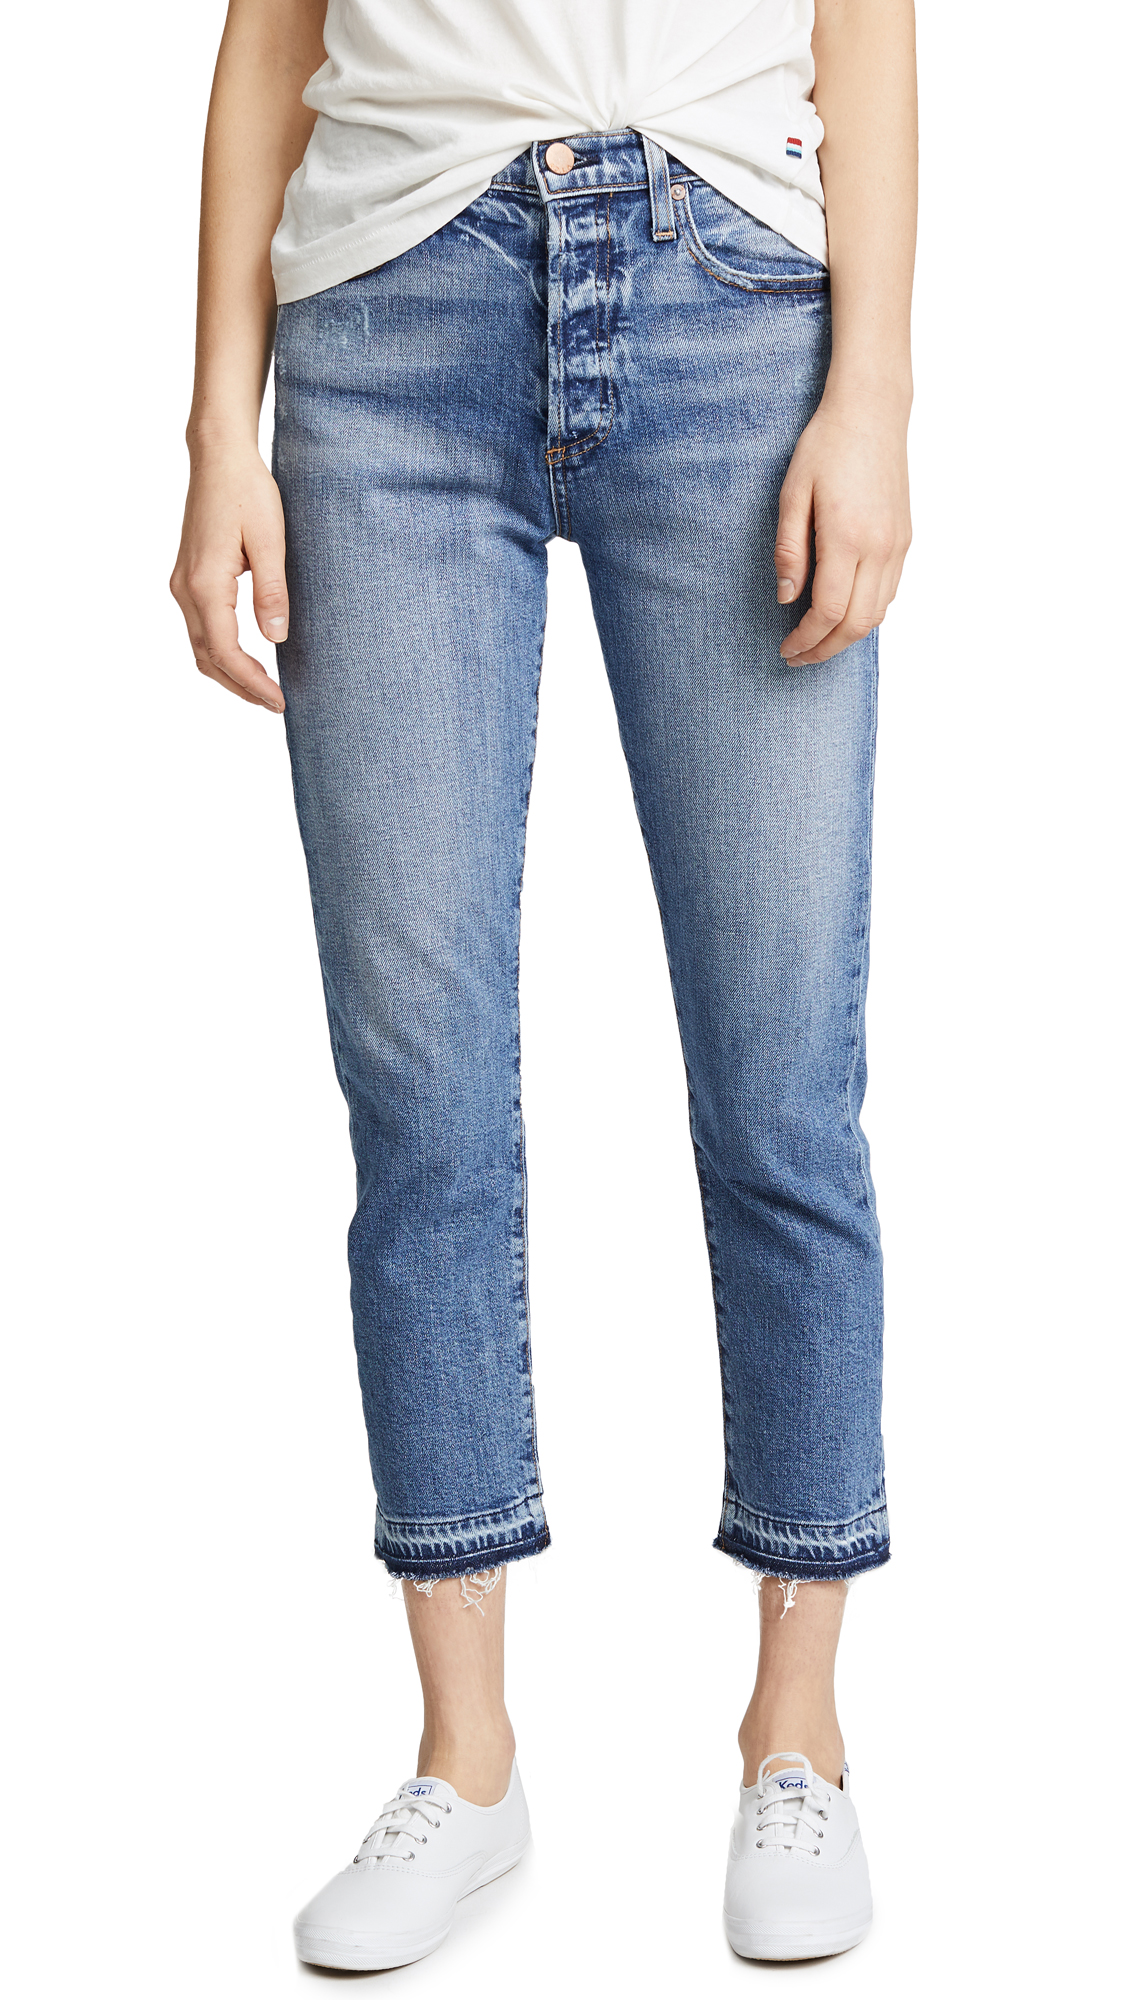 AO. LA by alice + olivia Amazing High Rise Girlfriend Jeans